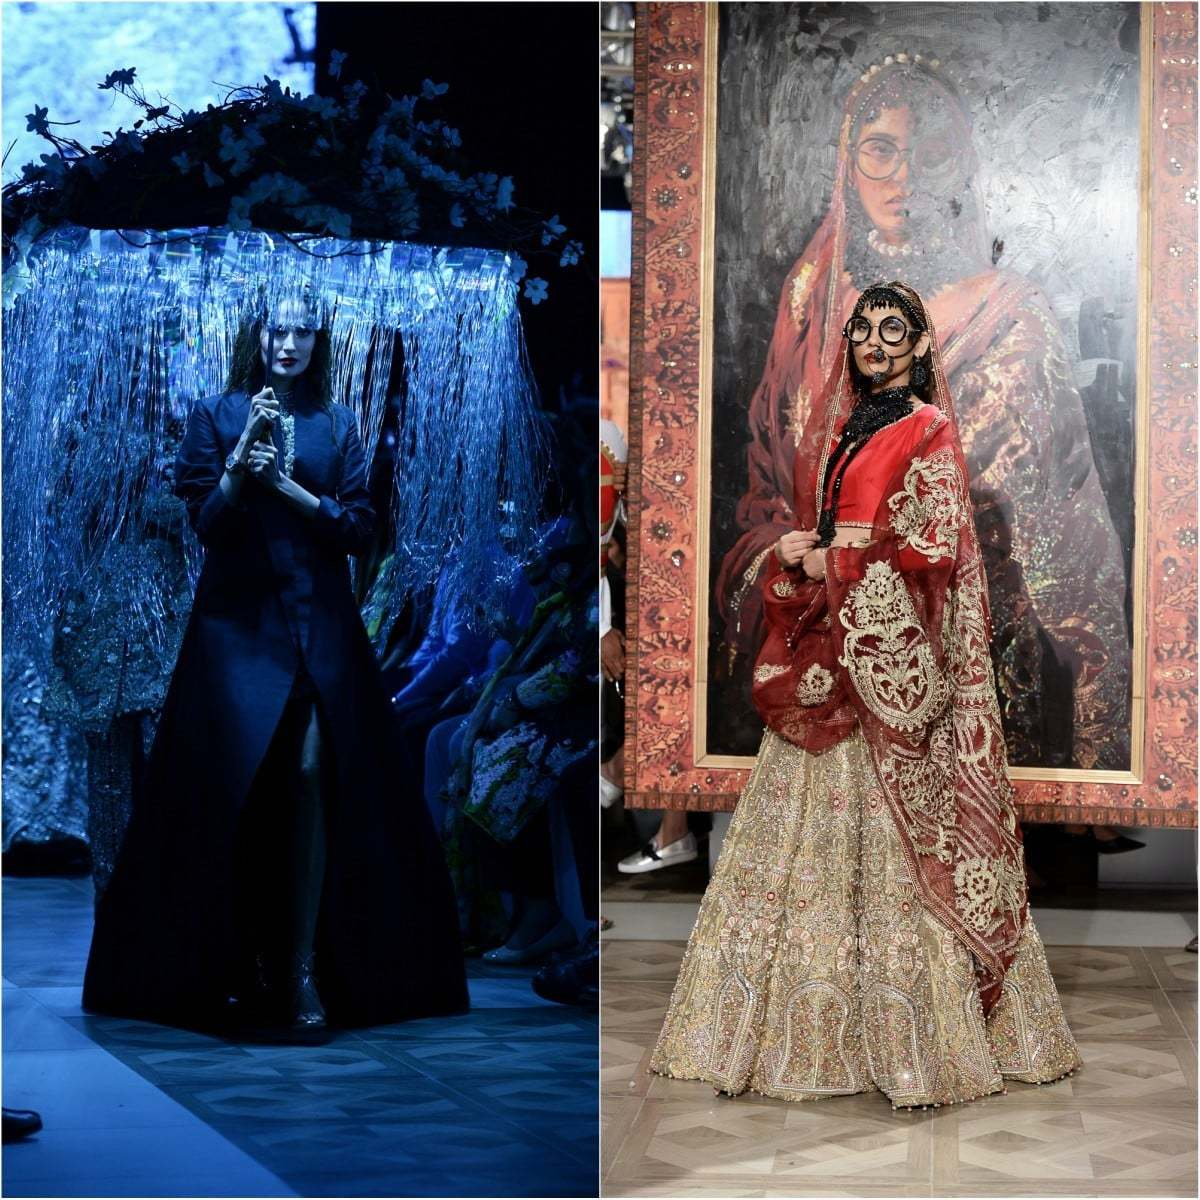 Ali Xeeshan's put up a memorable show at PLBW 2017.